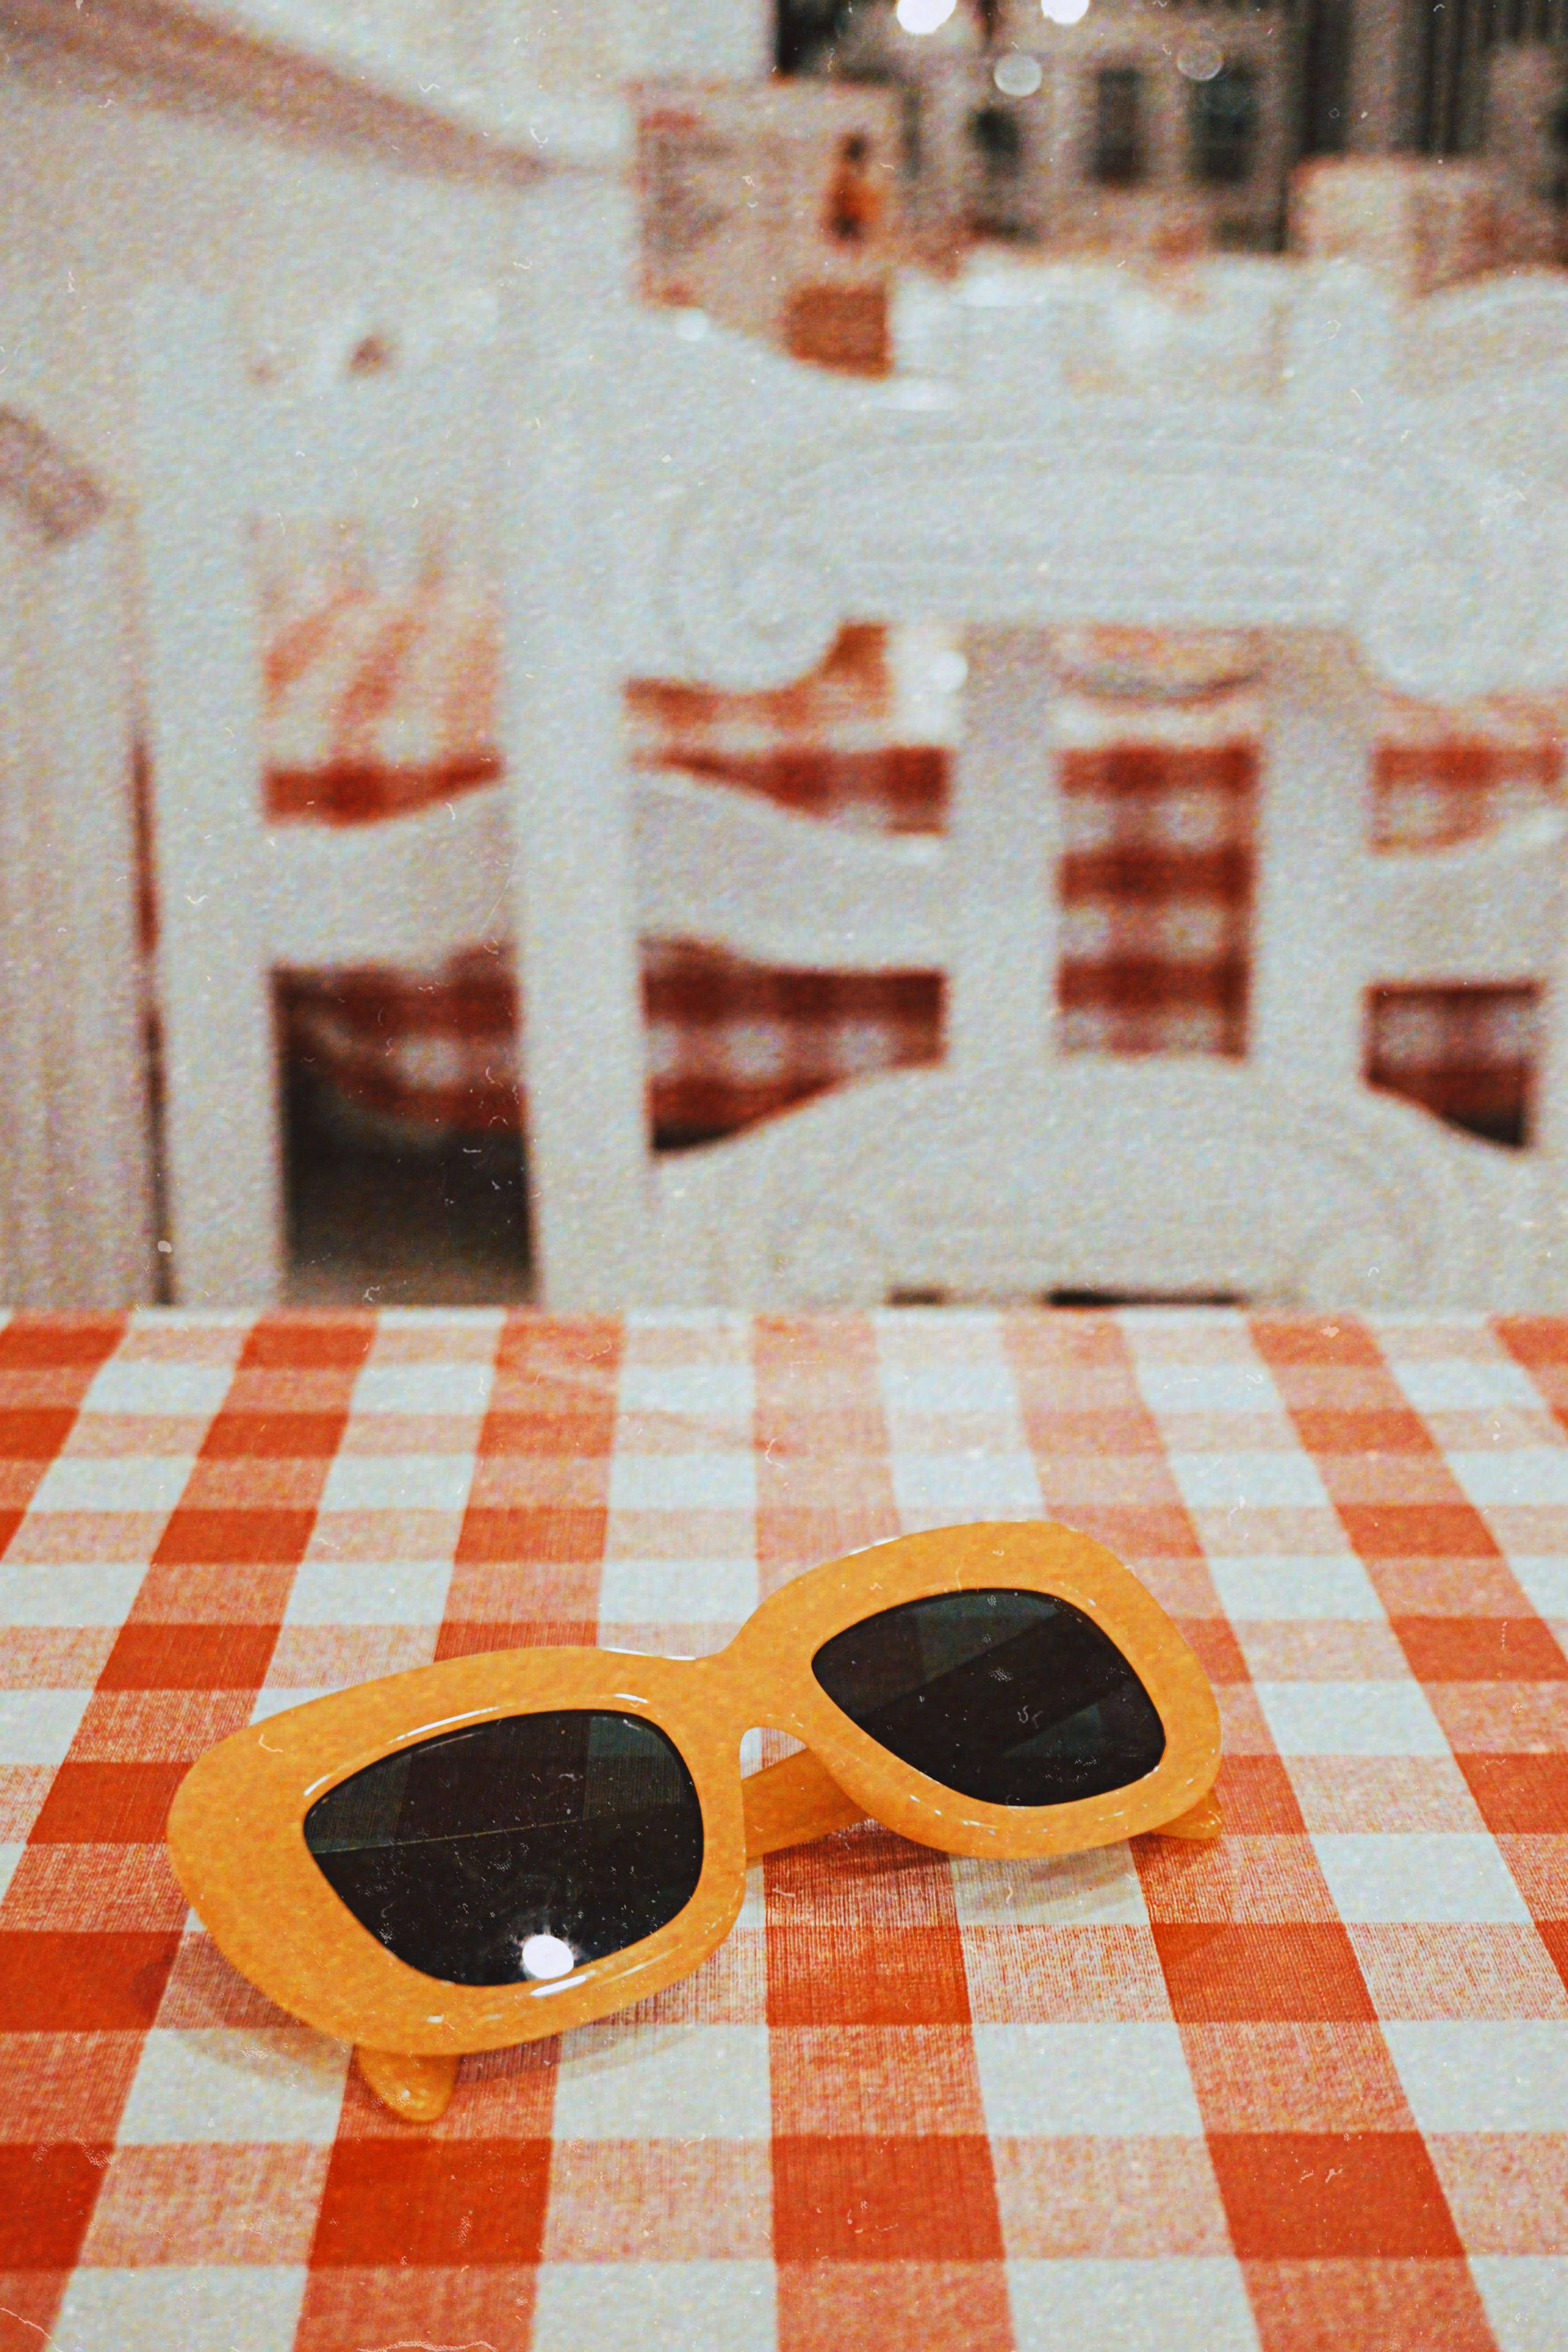 Sunglasses With Orange Frames on Checkered Tablecloth